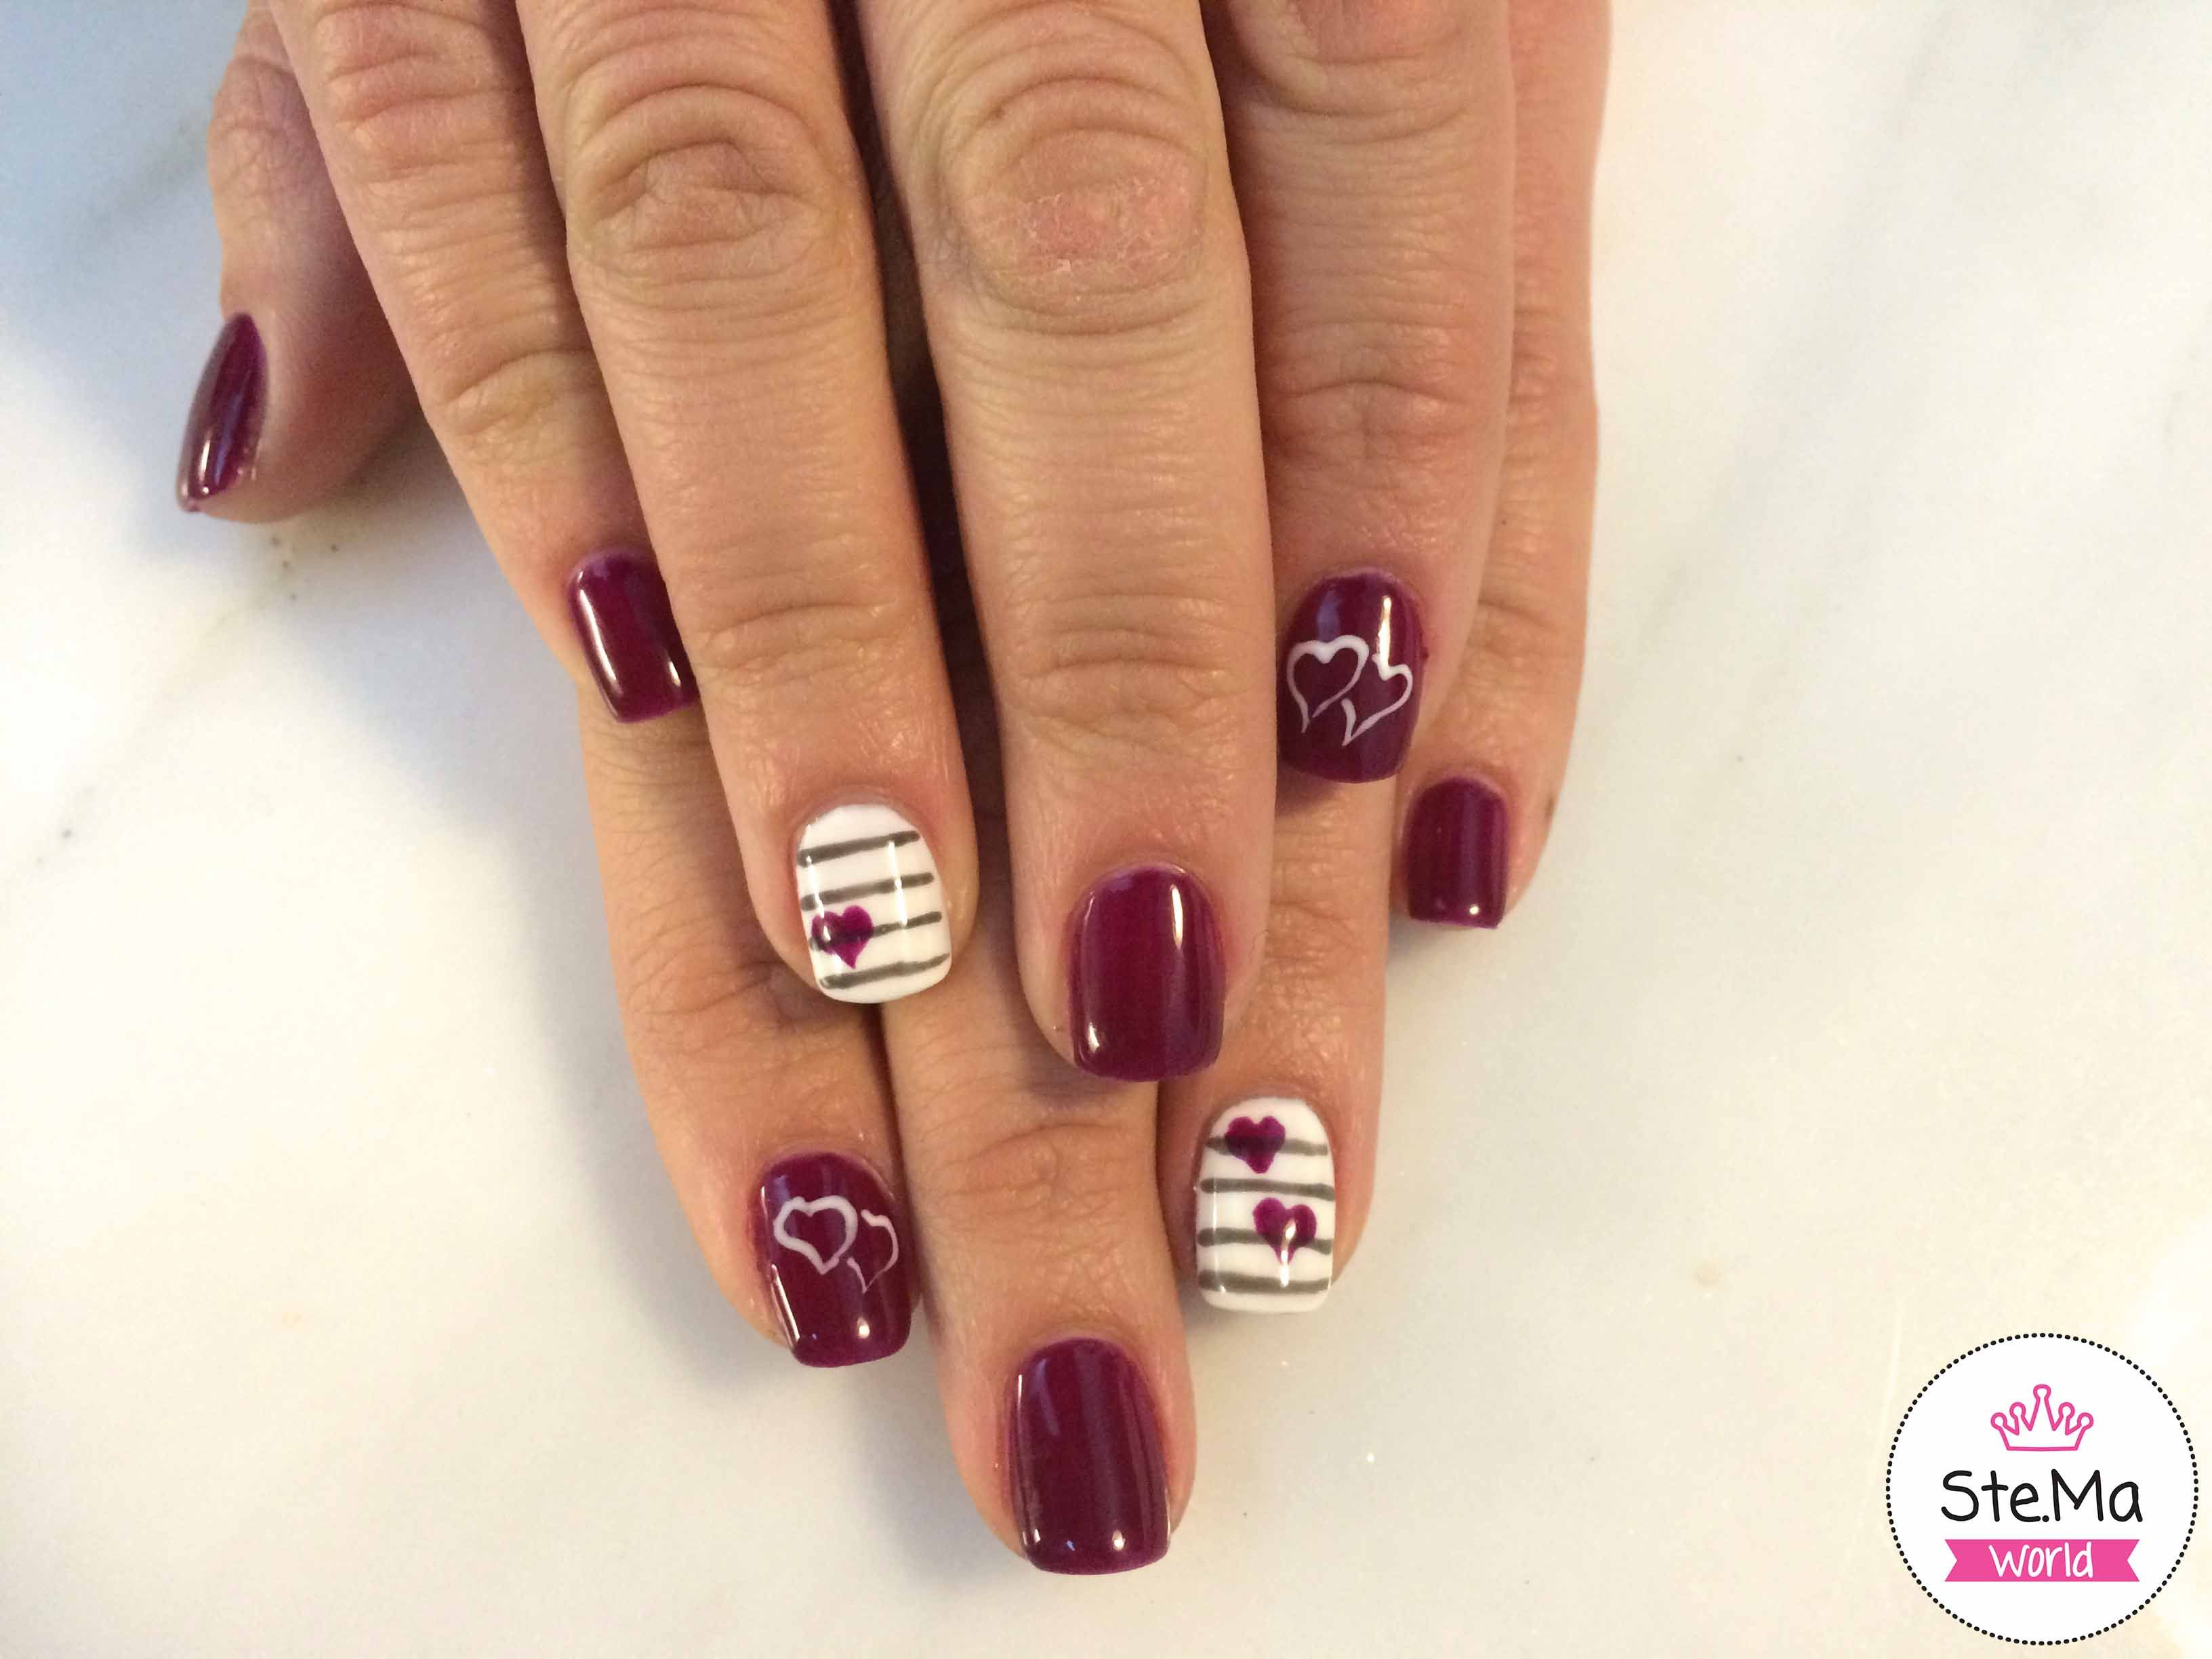 Winter nails with hearts | Ste.Ma hair&nails | Pinterest | Winter nails